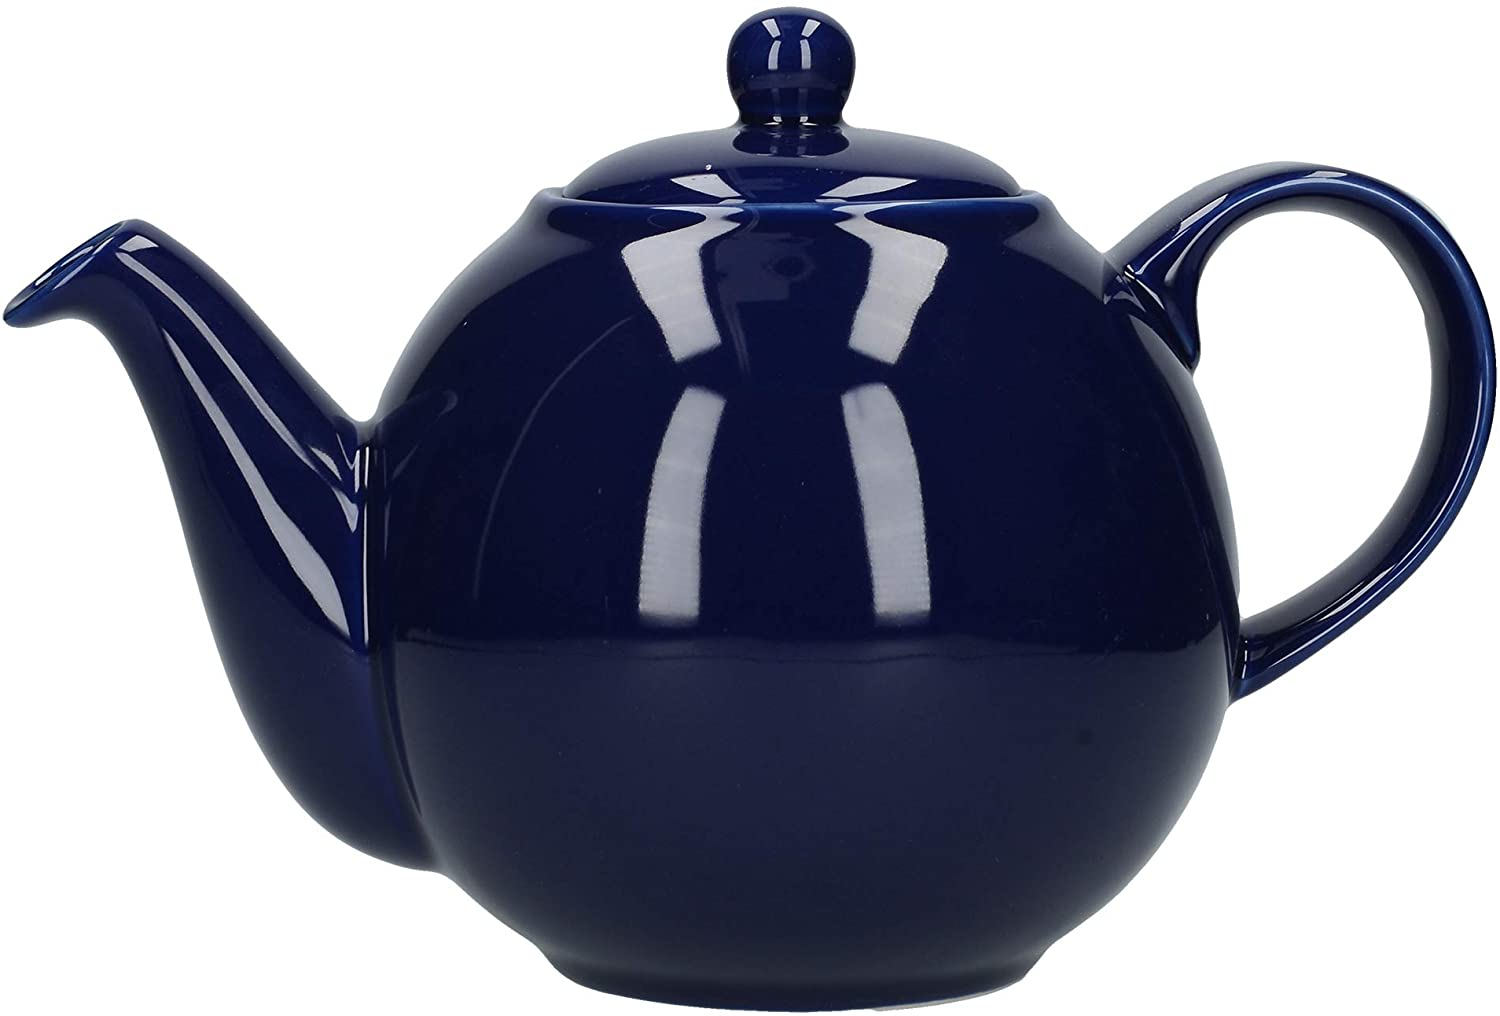 London Pottery Globe Teapot, Cobalt Blue, 4 Cup, Closed Box